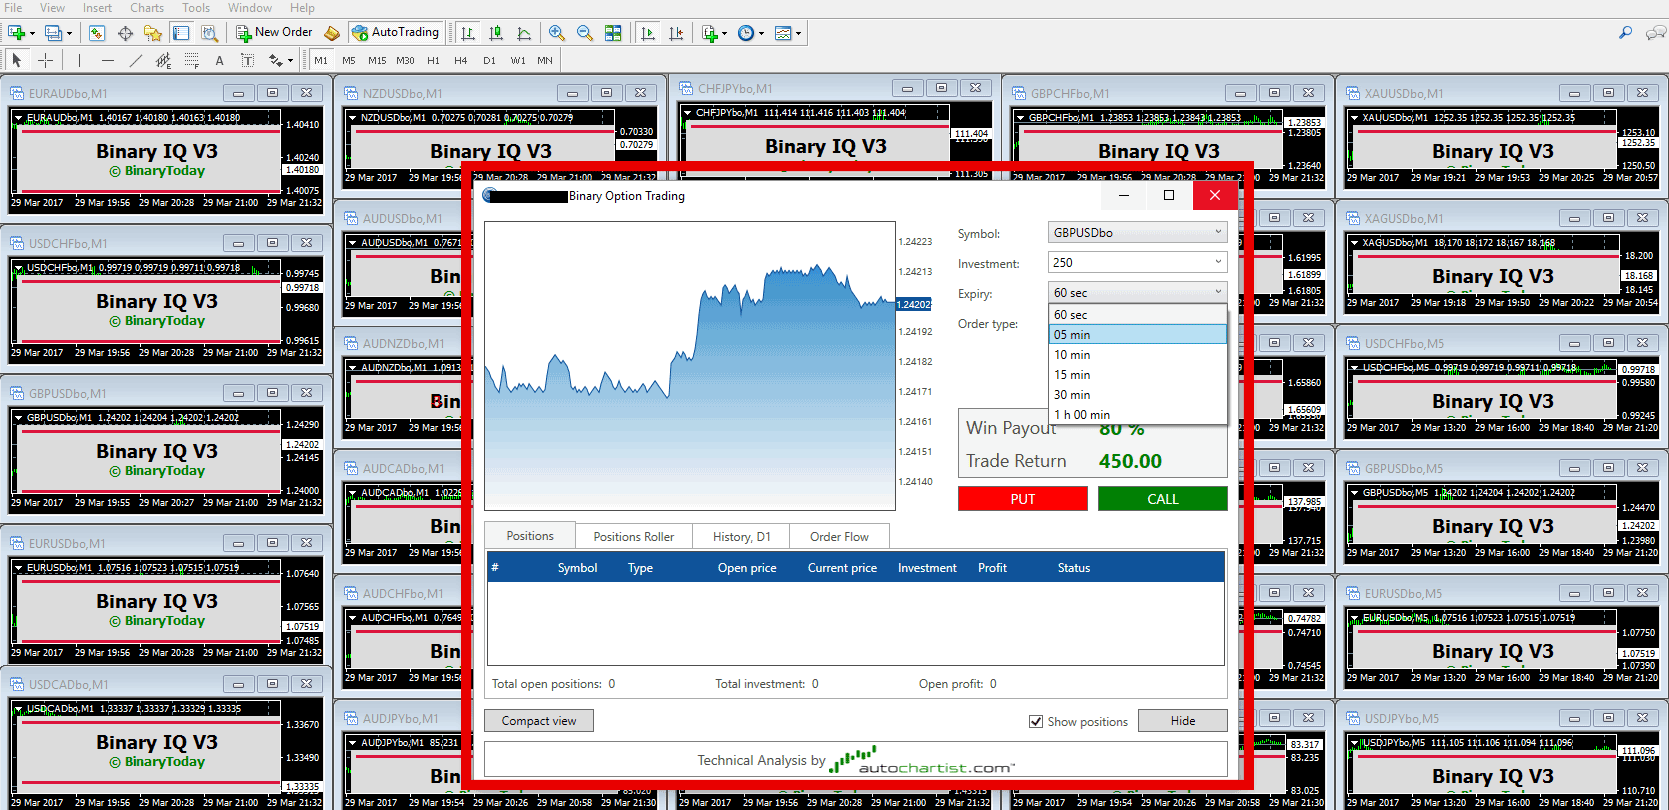 Binary options broker with mt4